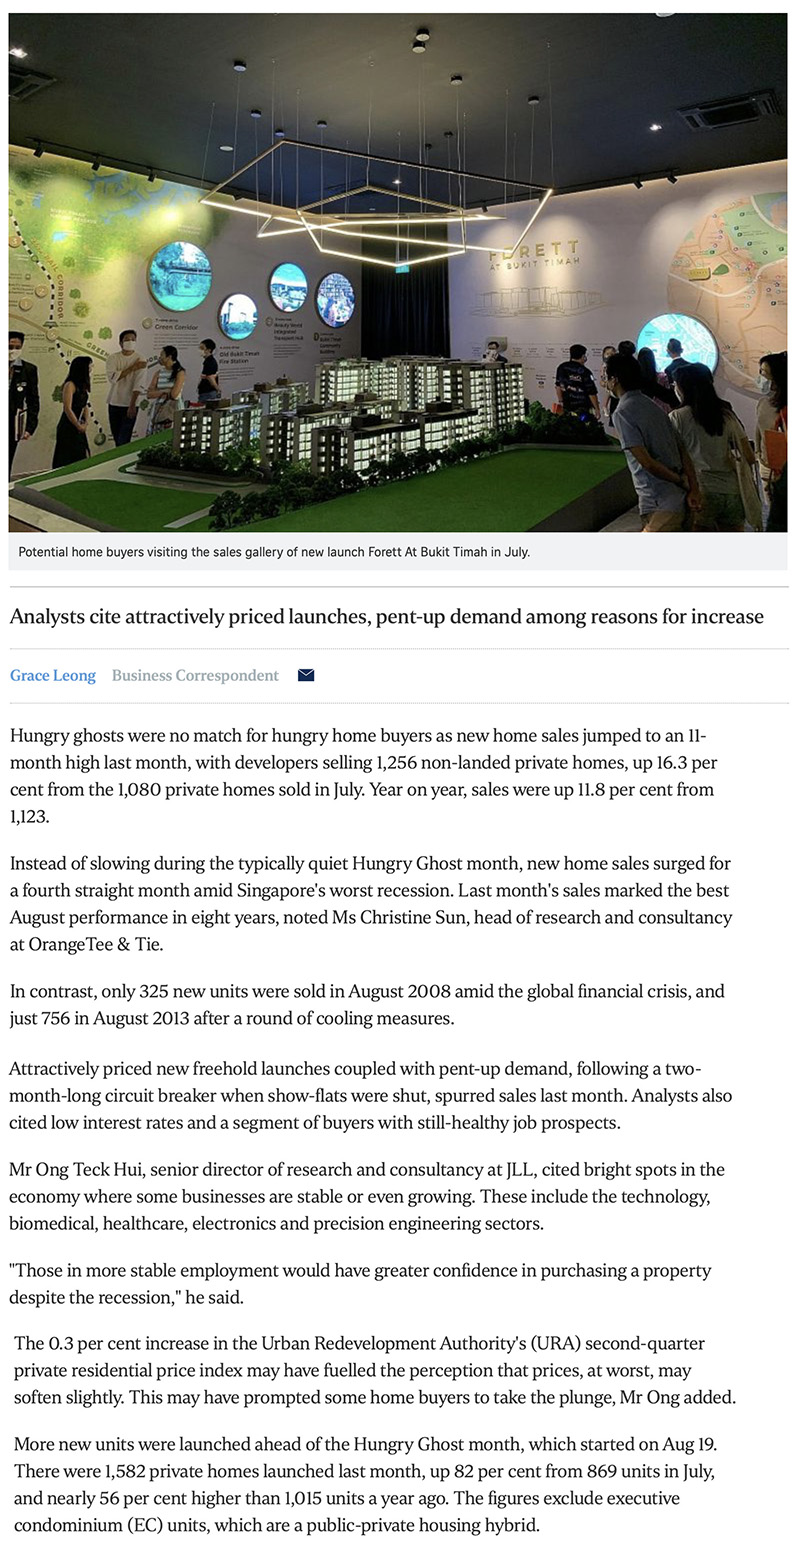 The Watergardens - New home sales surge to 11-month high in August 1